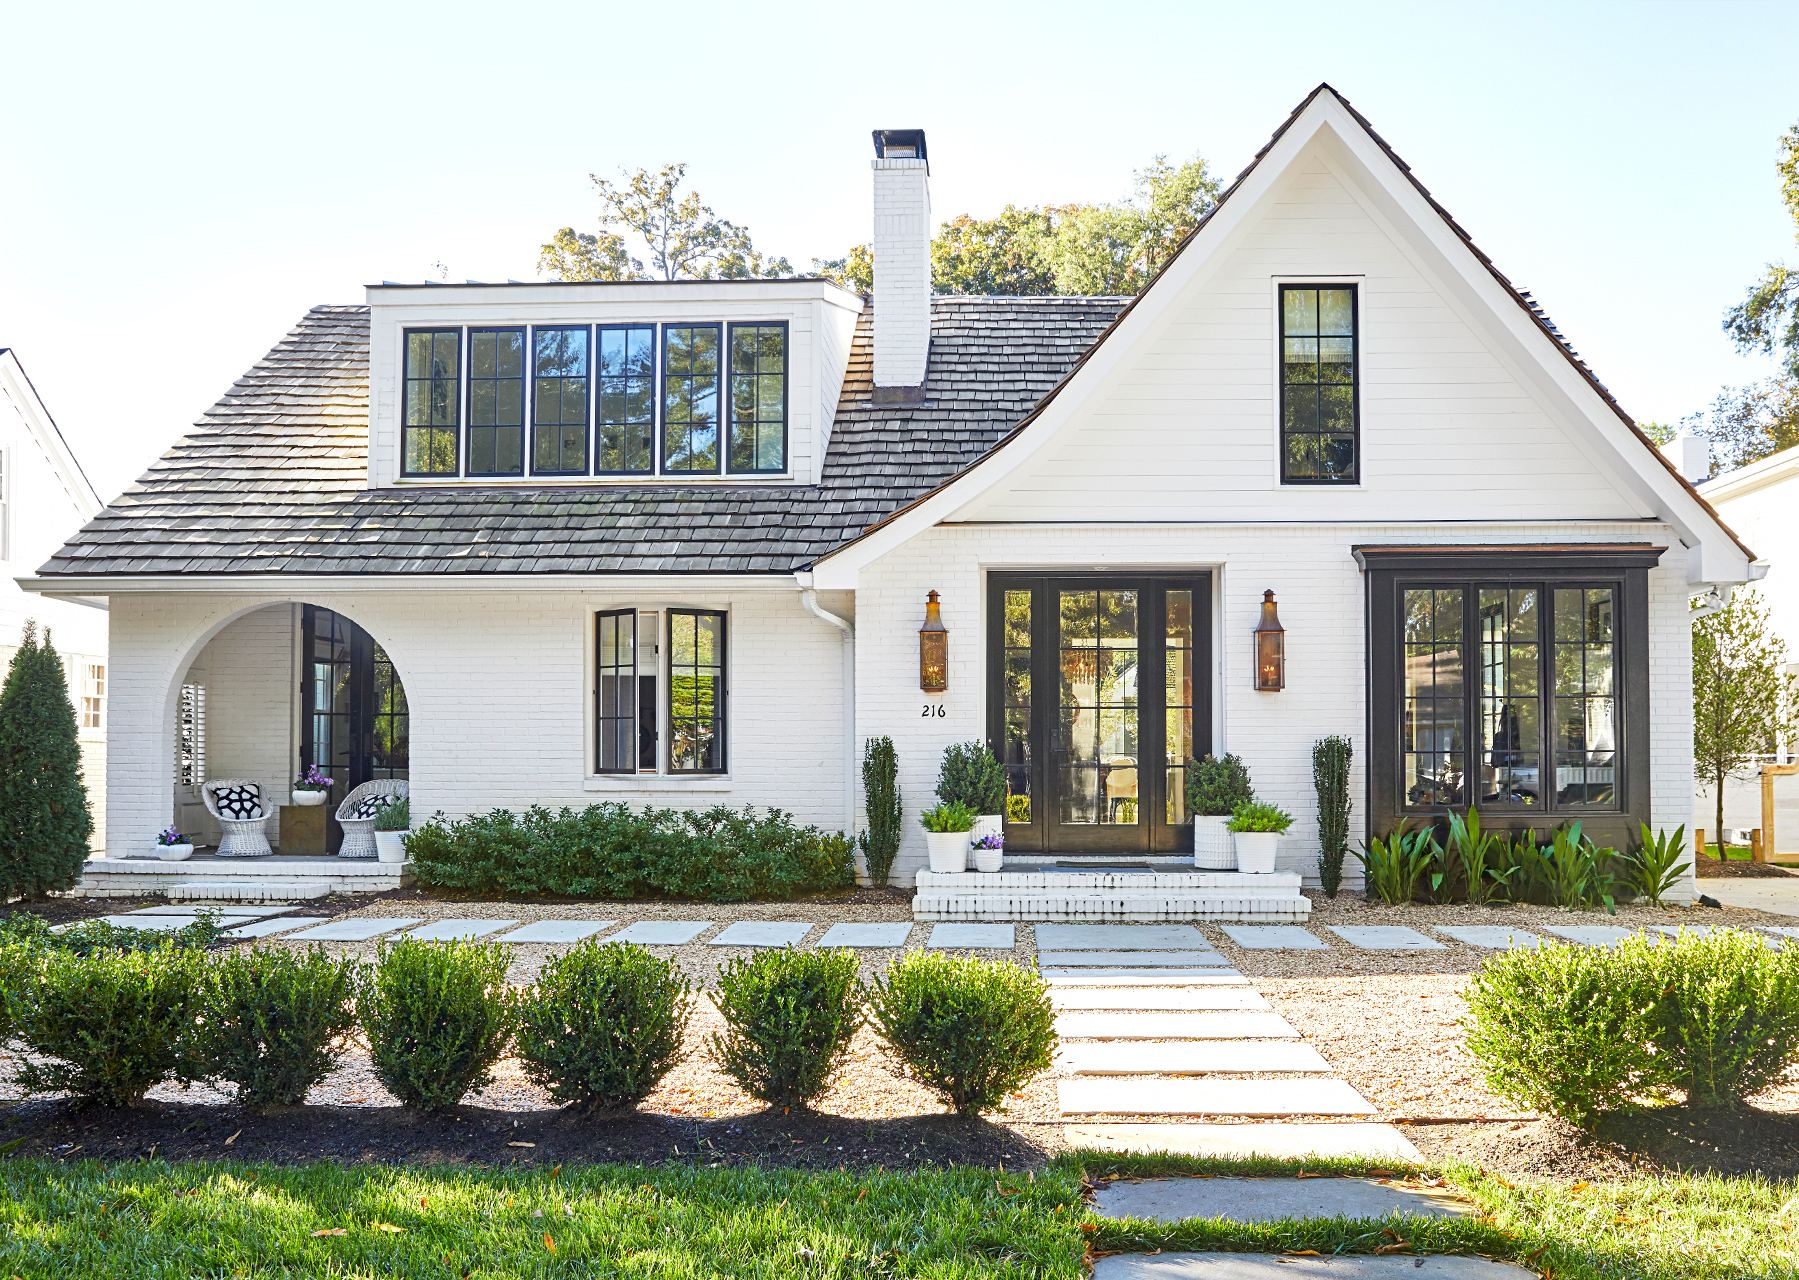 Styling Your Home from the Outside - In